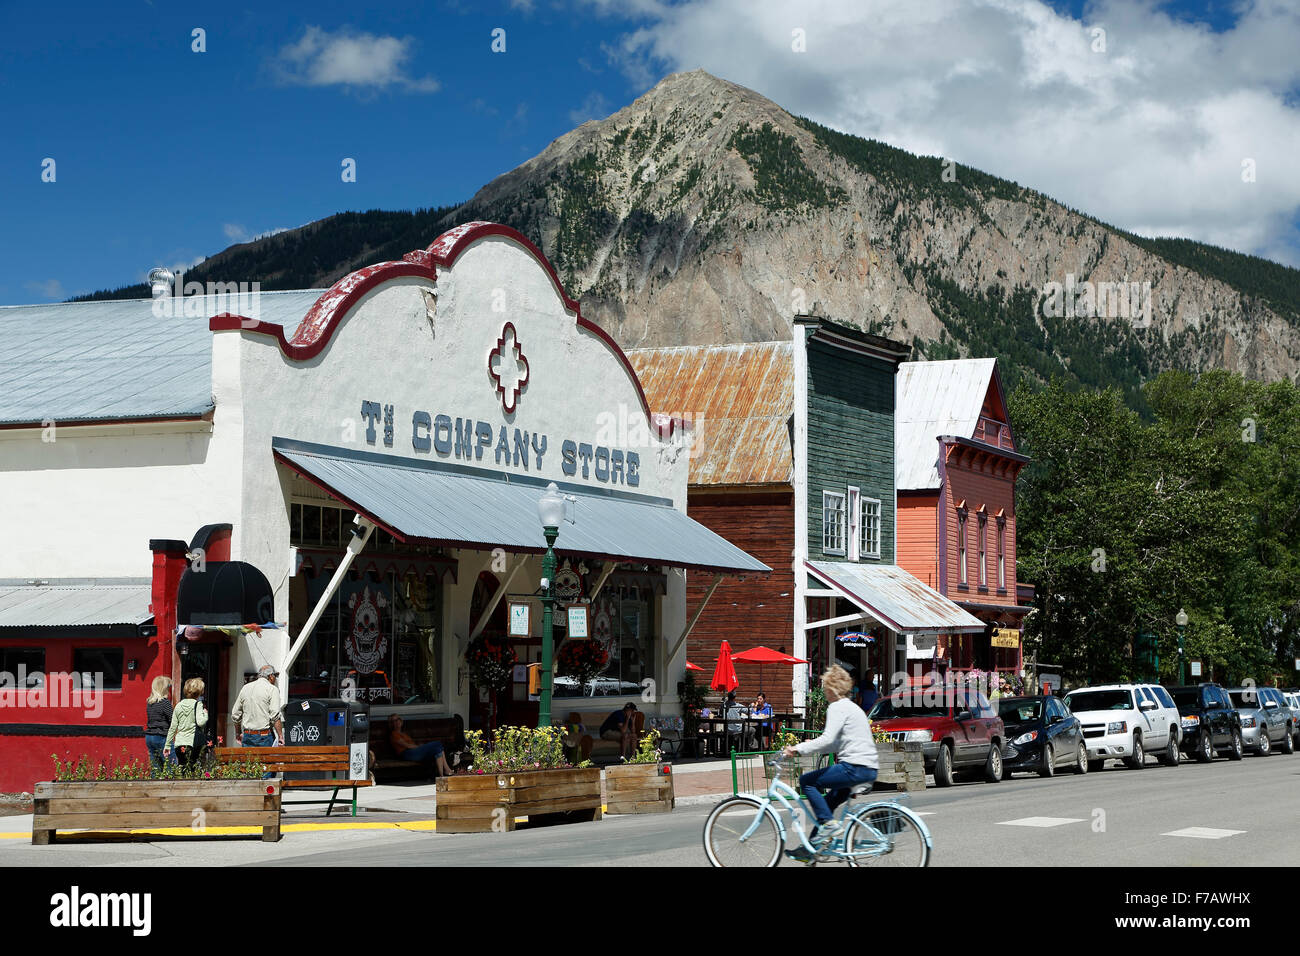 Historic Downtown, cyclist and Mount Crested Butte (12,162 ft.), Crested Butte, Colorado USA - Stock Image